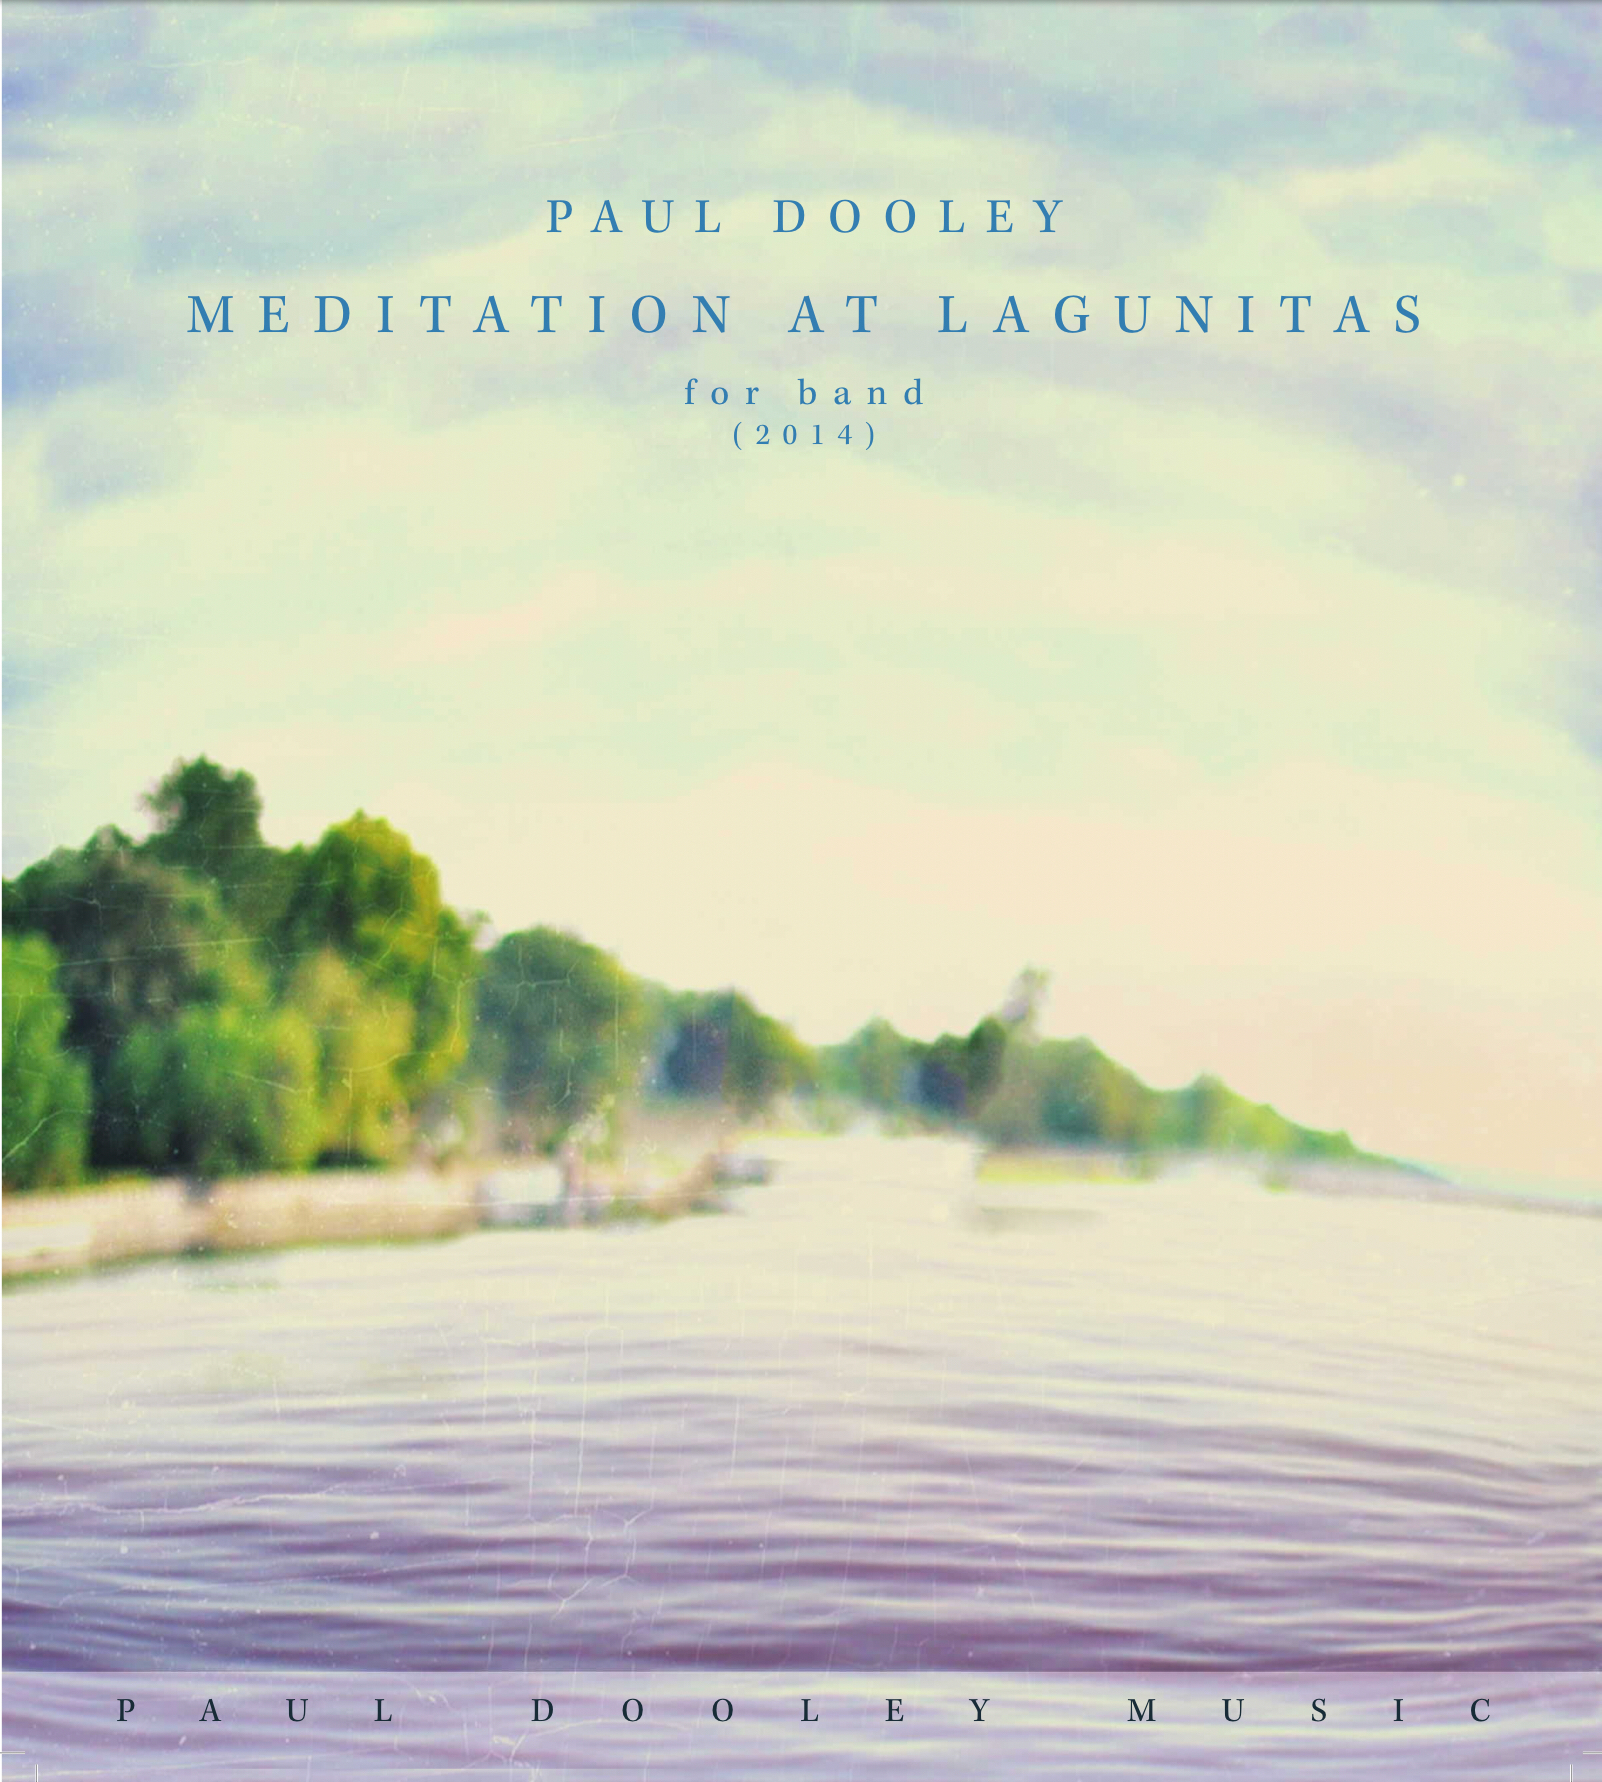 Meditation At Lagunitas  by Paul Dooley